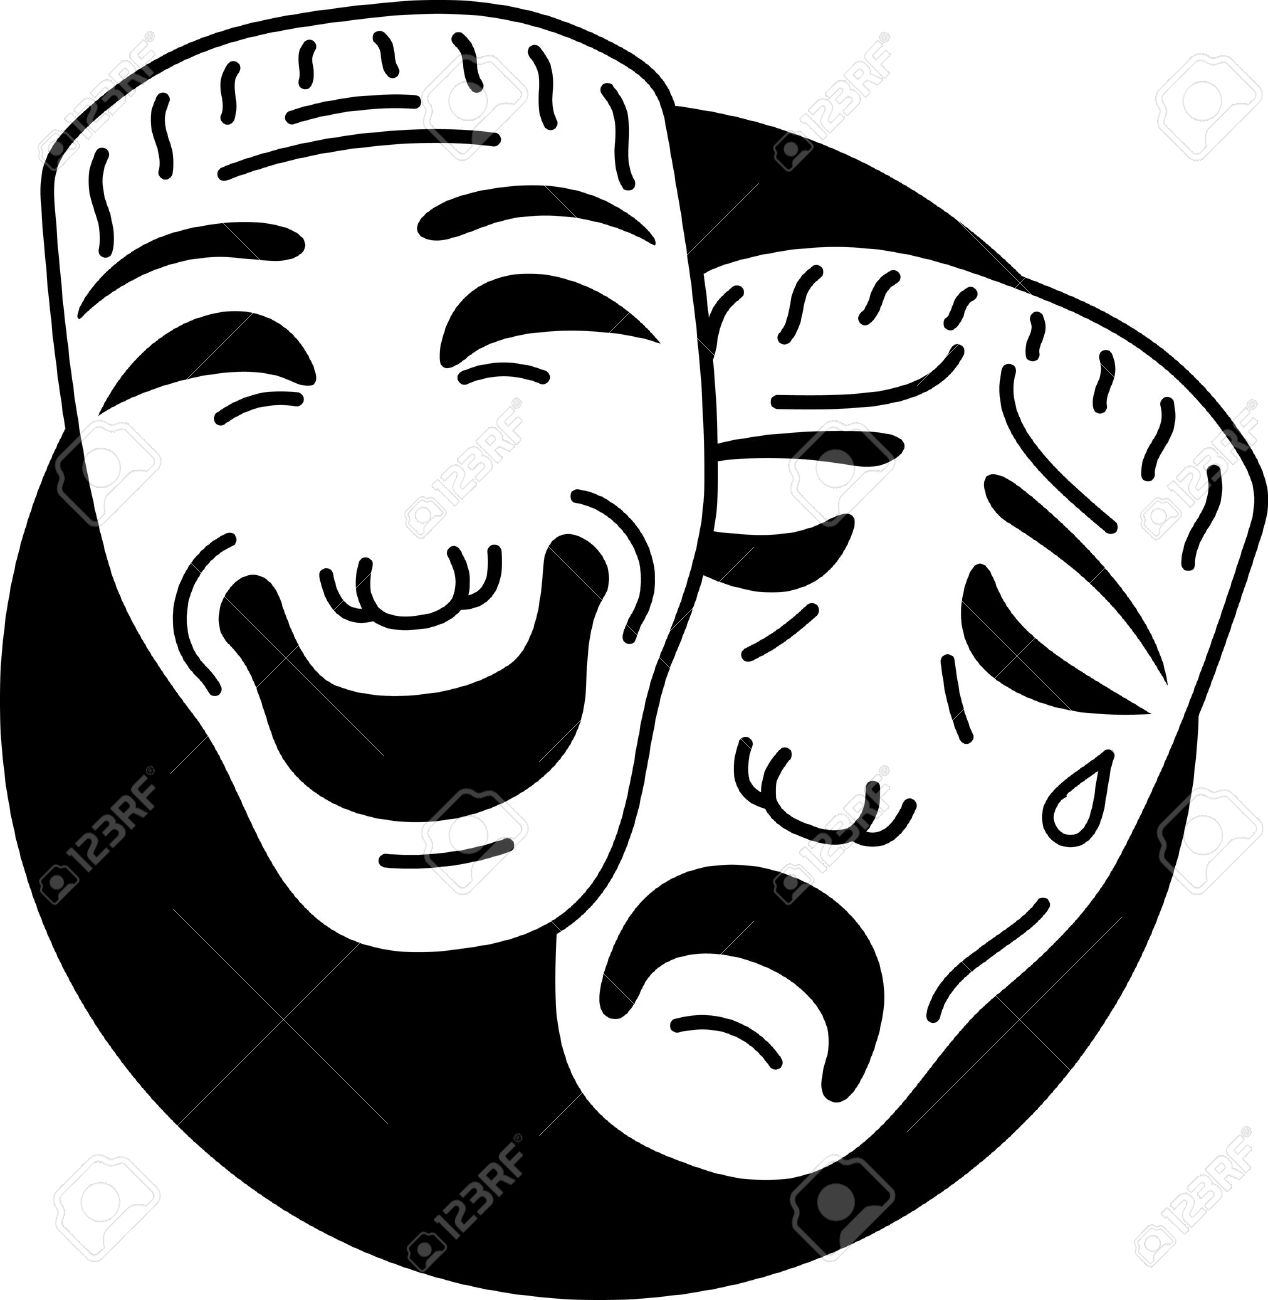 Theatre comedy and tragedy masks - 7123743